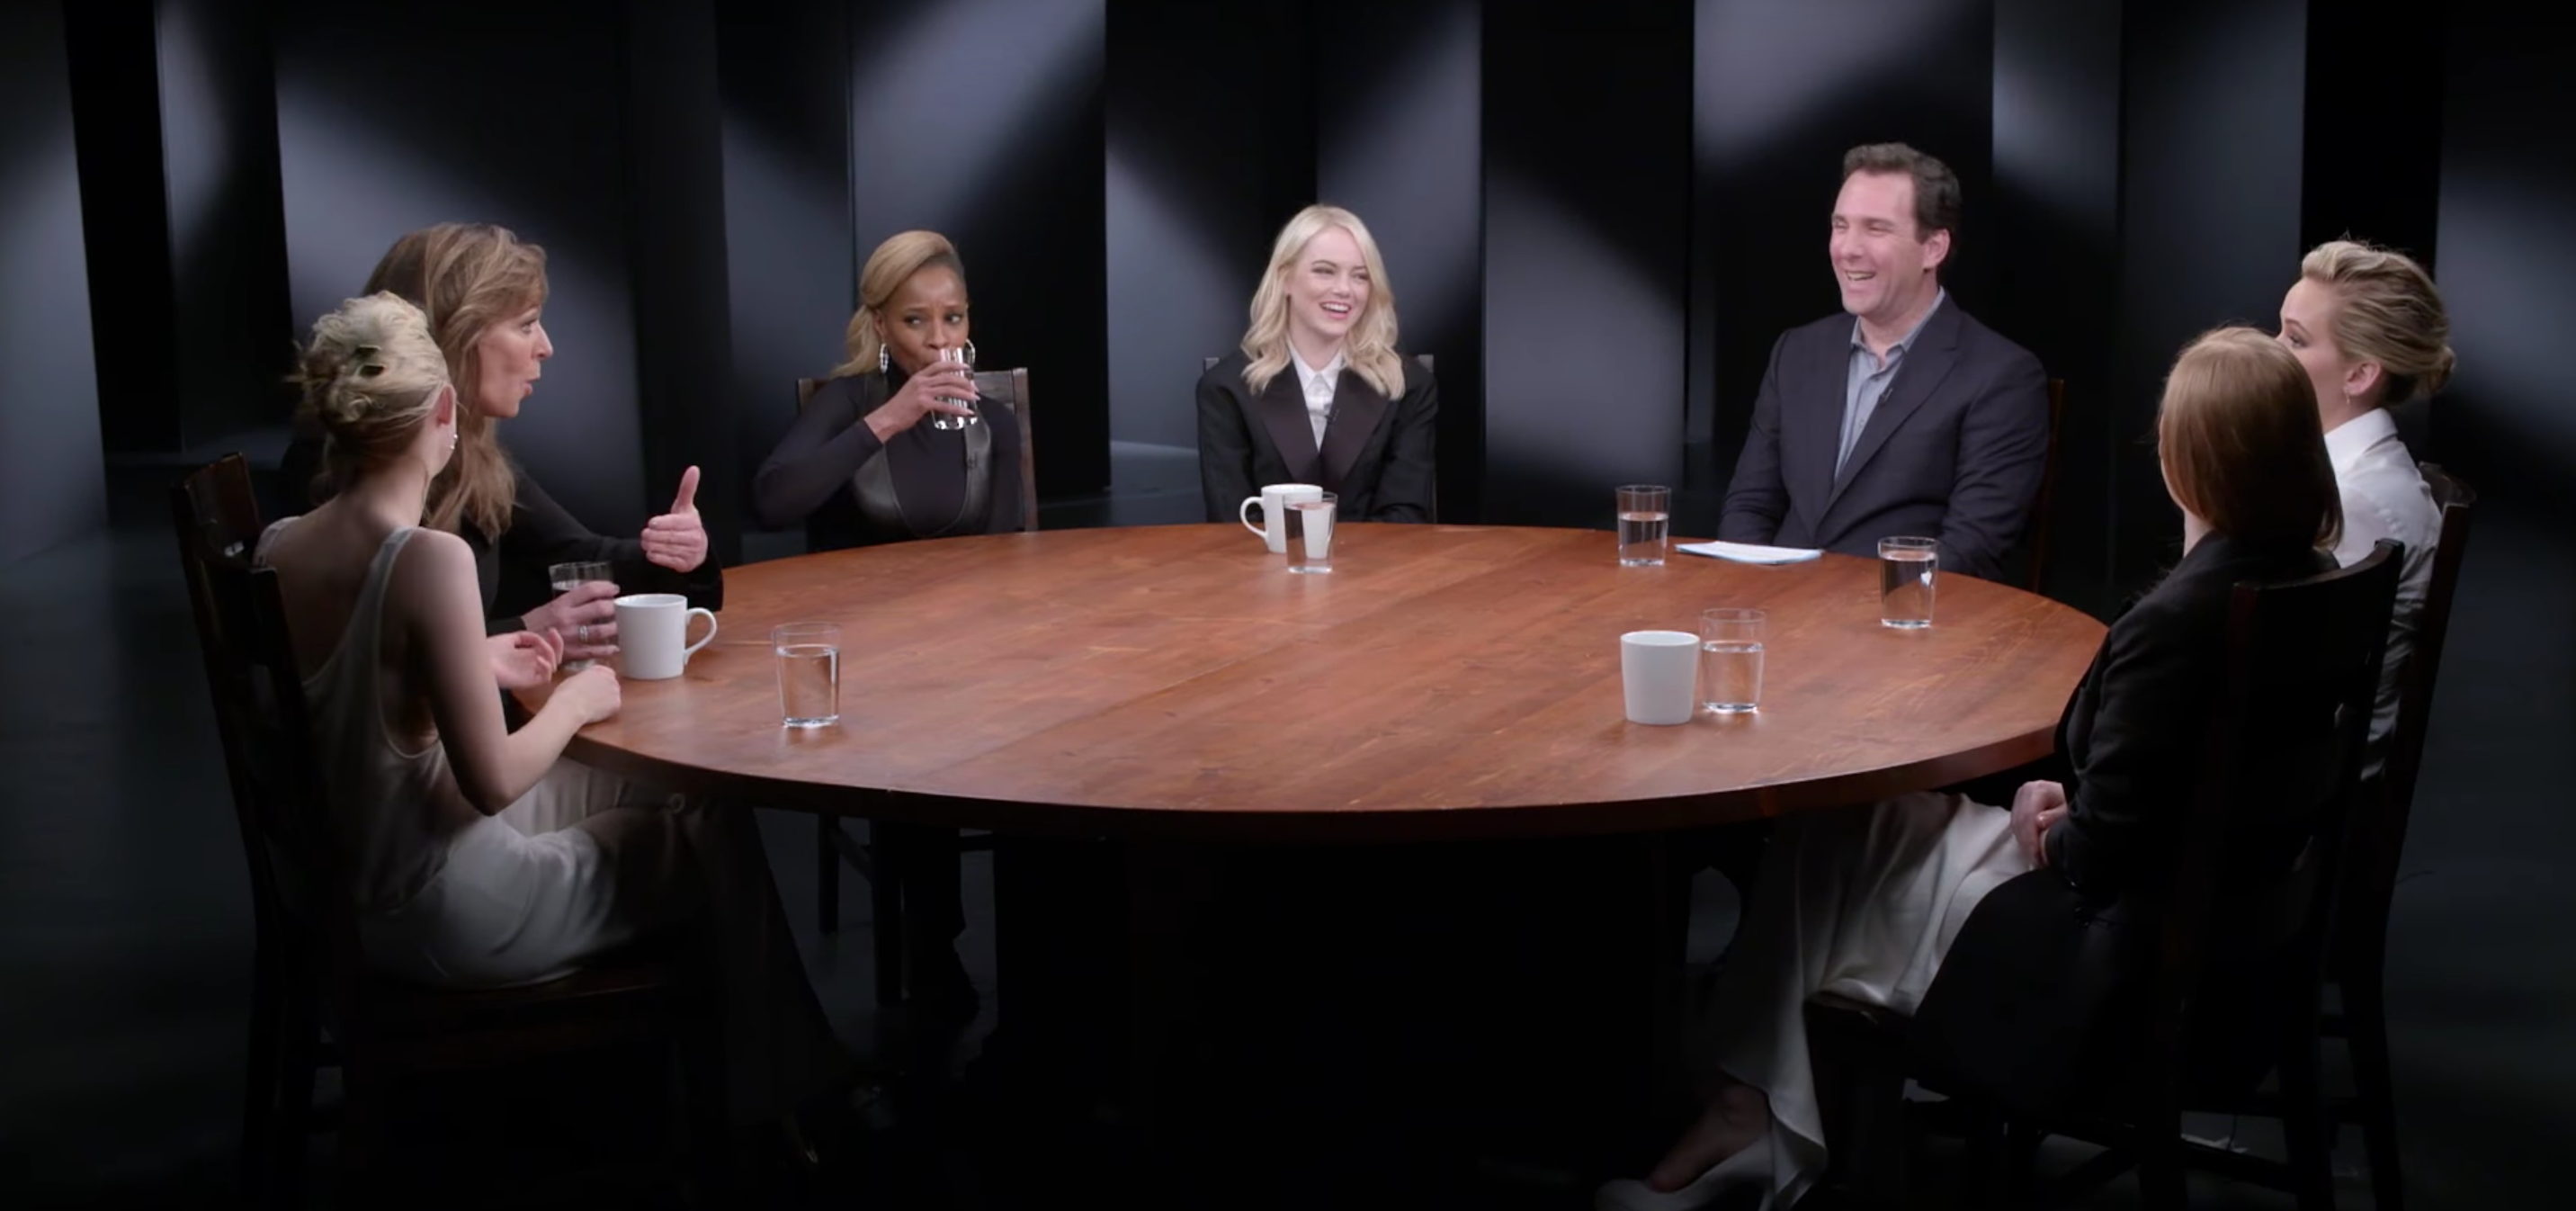 actress roundtable - View a 1-Hour Roundtable Conversation with Jessica Chastain, Jennifer Lawrence, Emma Stone & & More